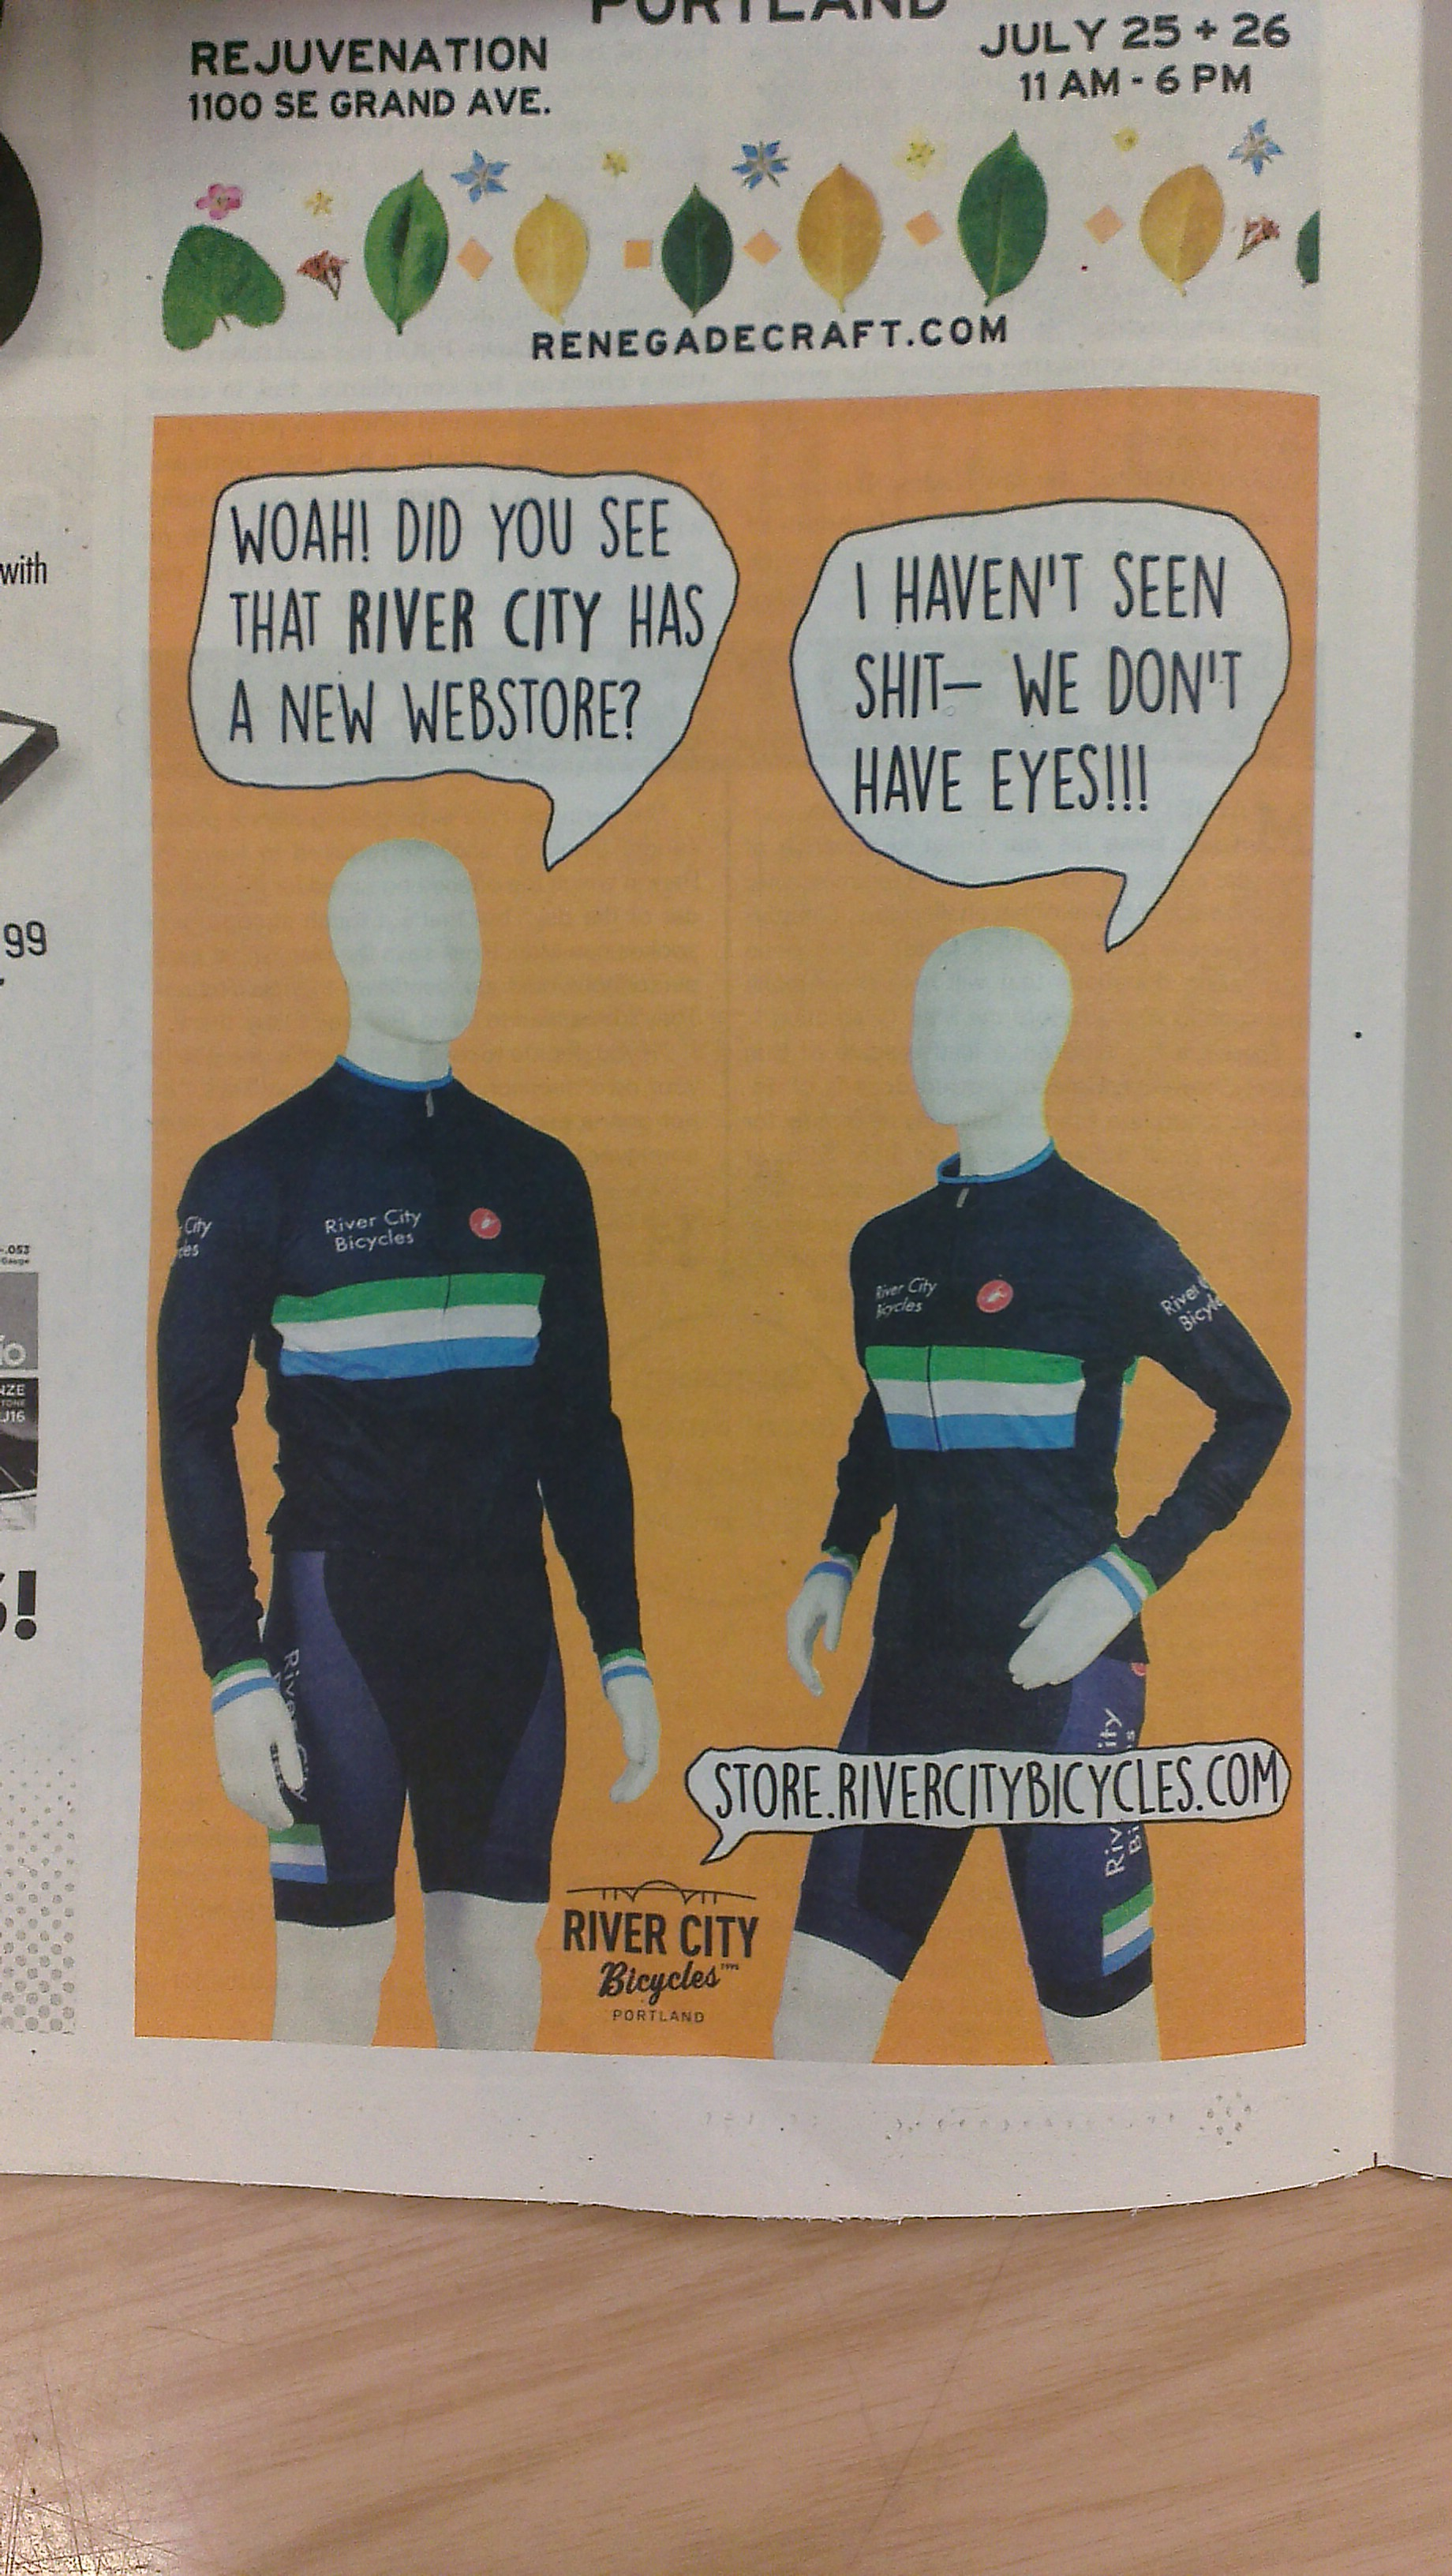 This advertisement for a local bicycle shop.